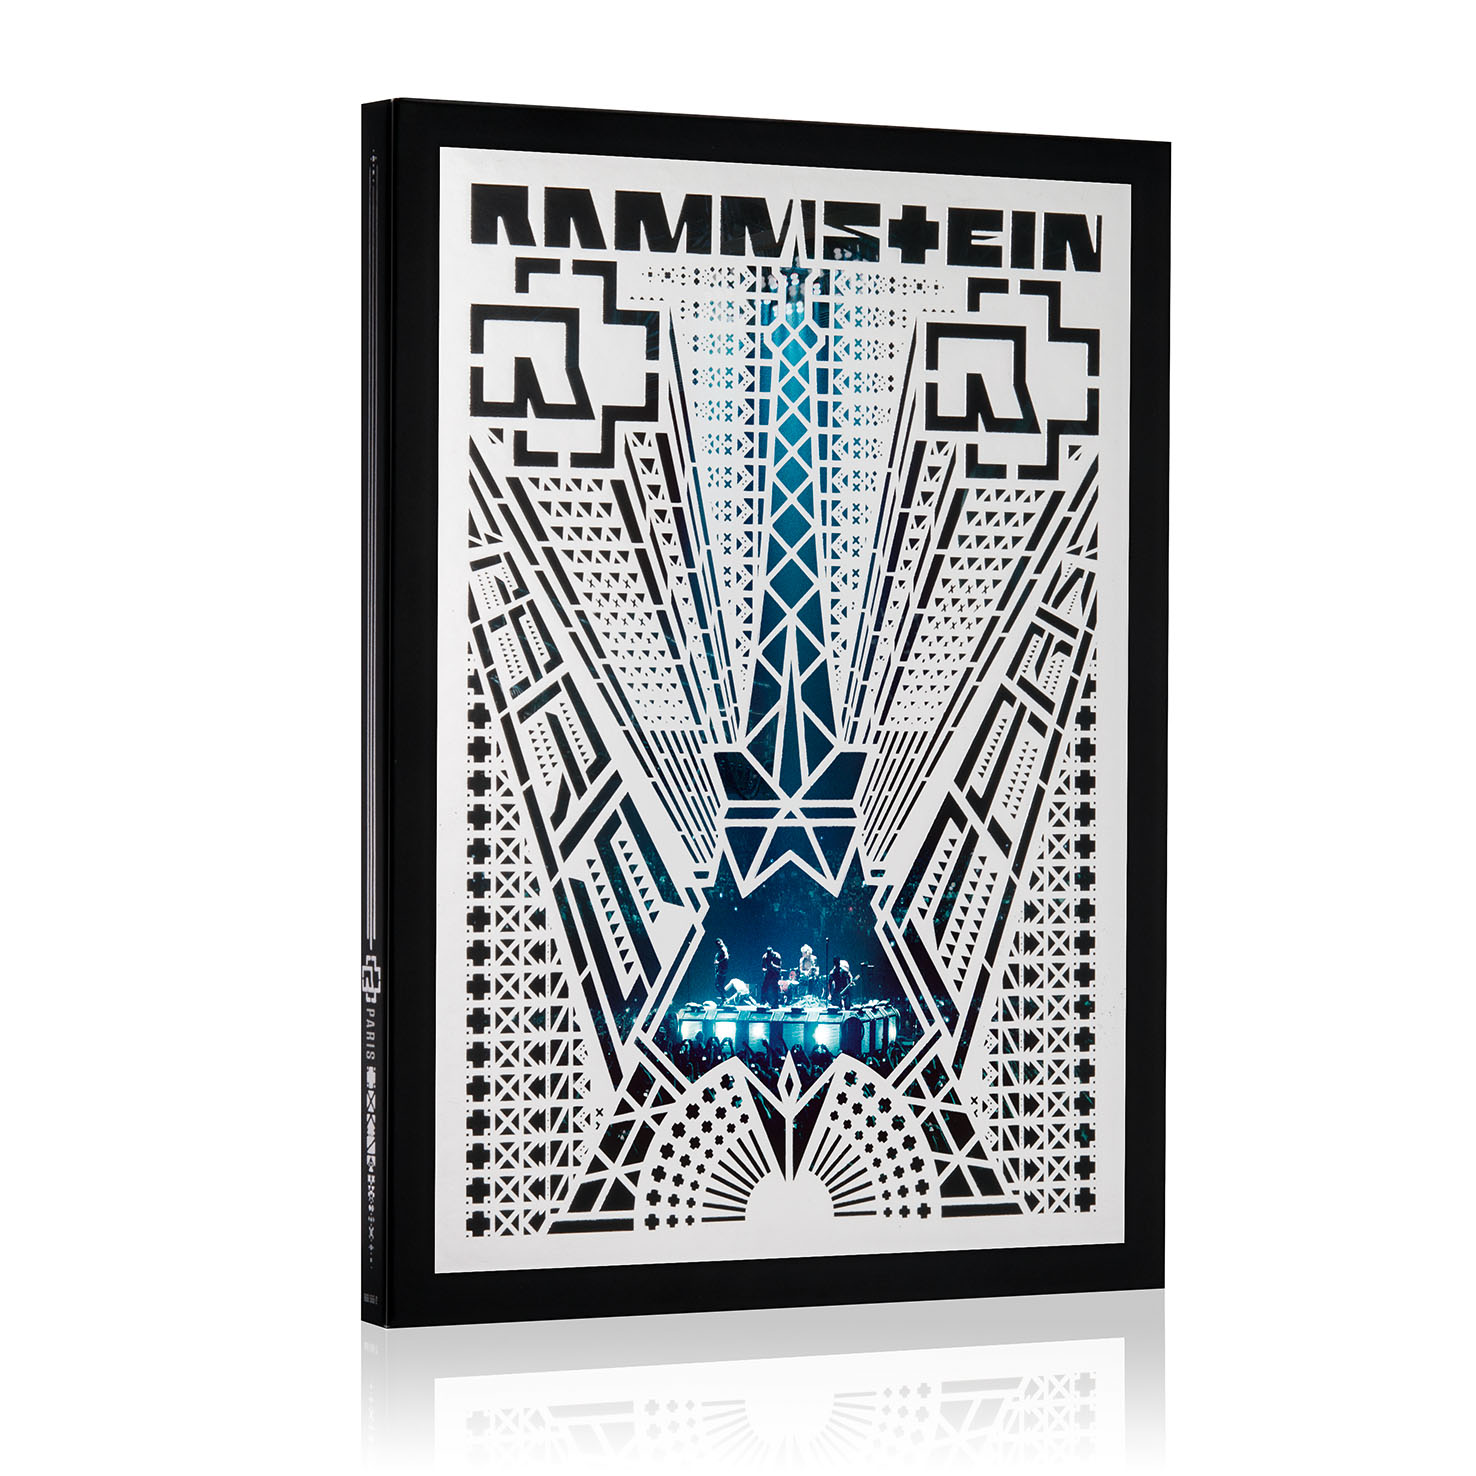 Rammstein: Paris (Blu-ray) цена